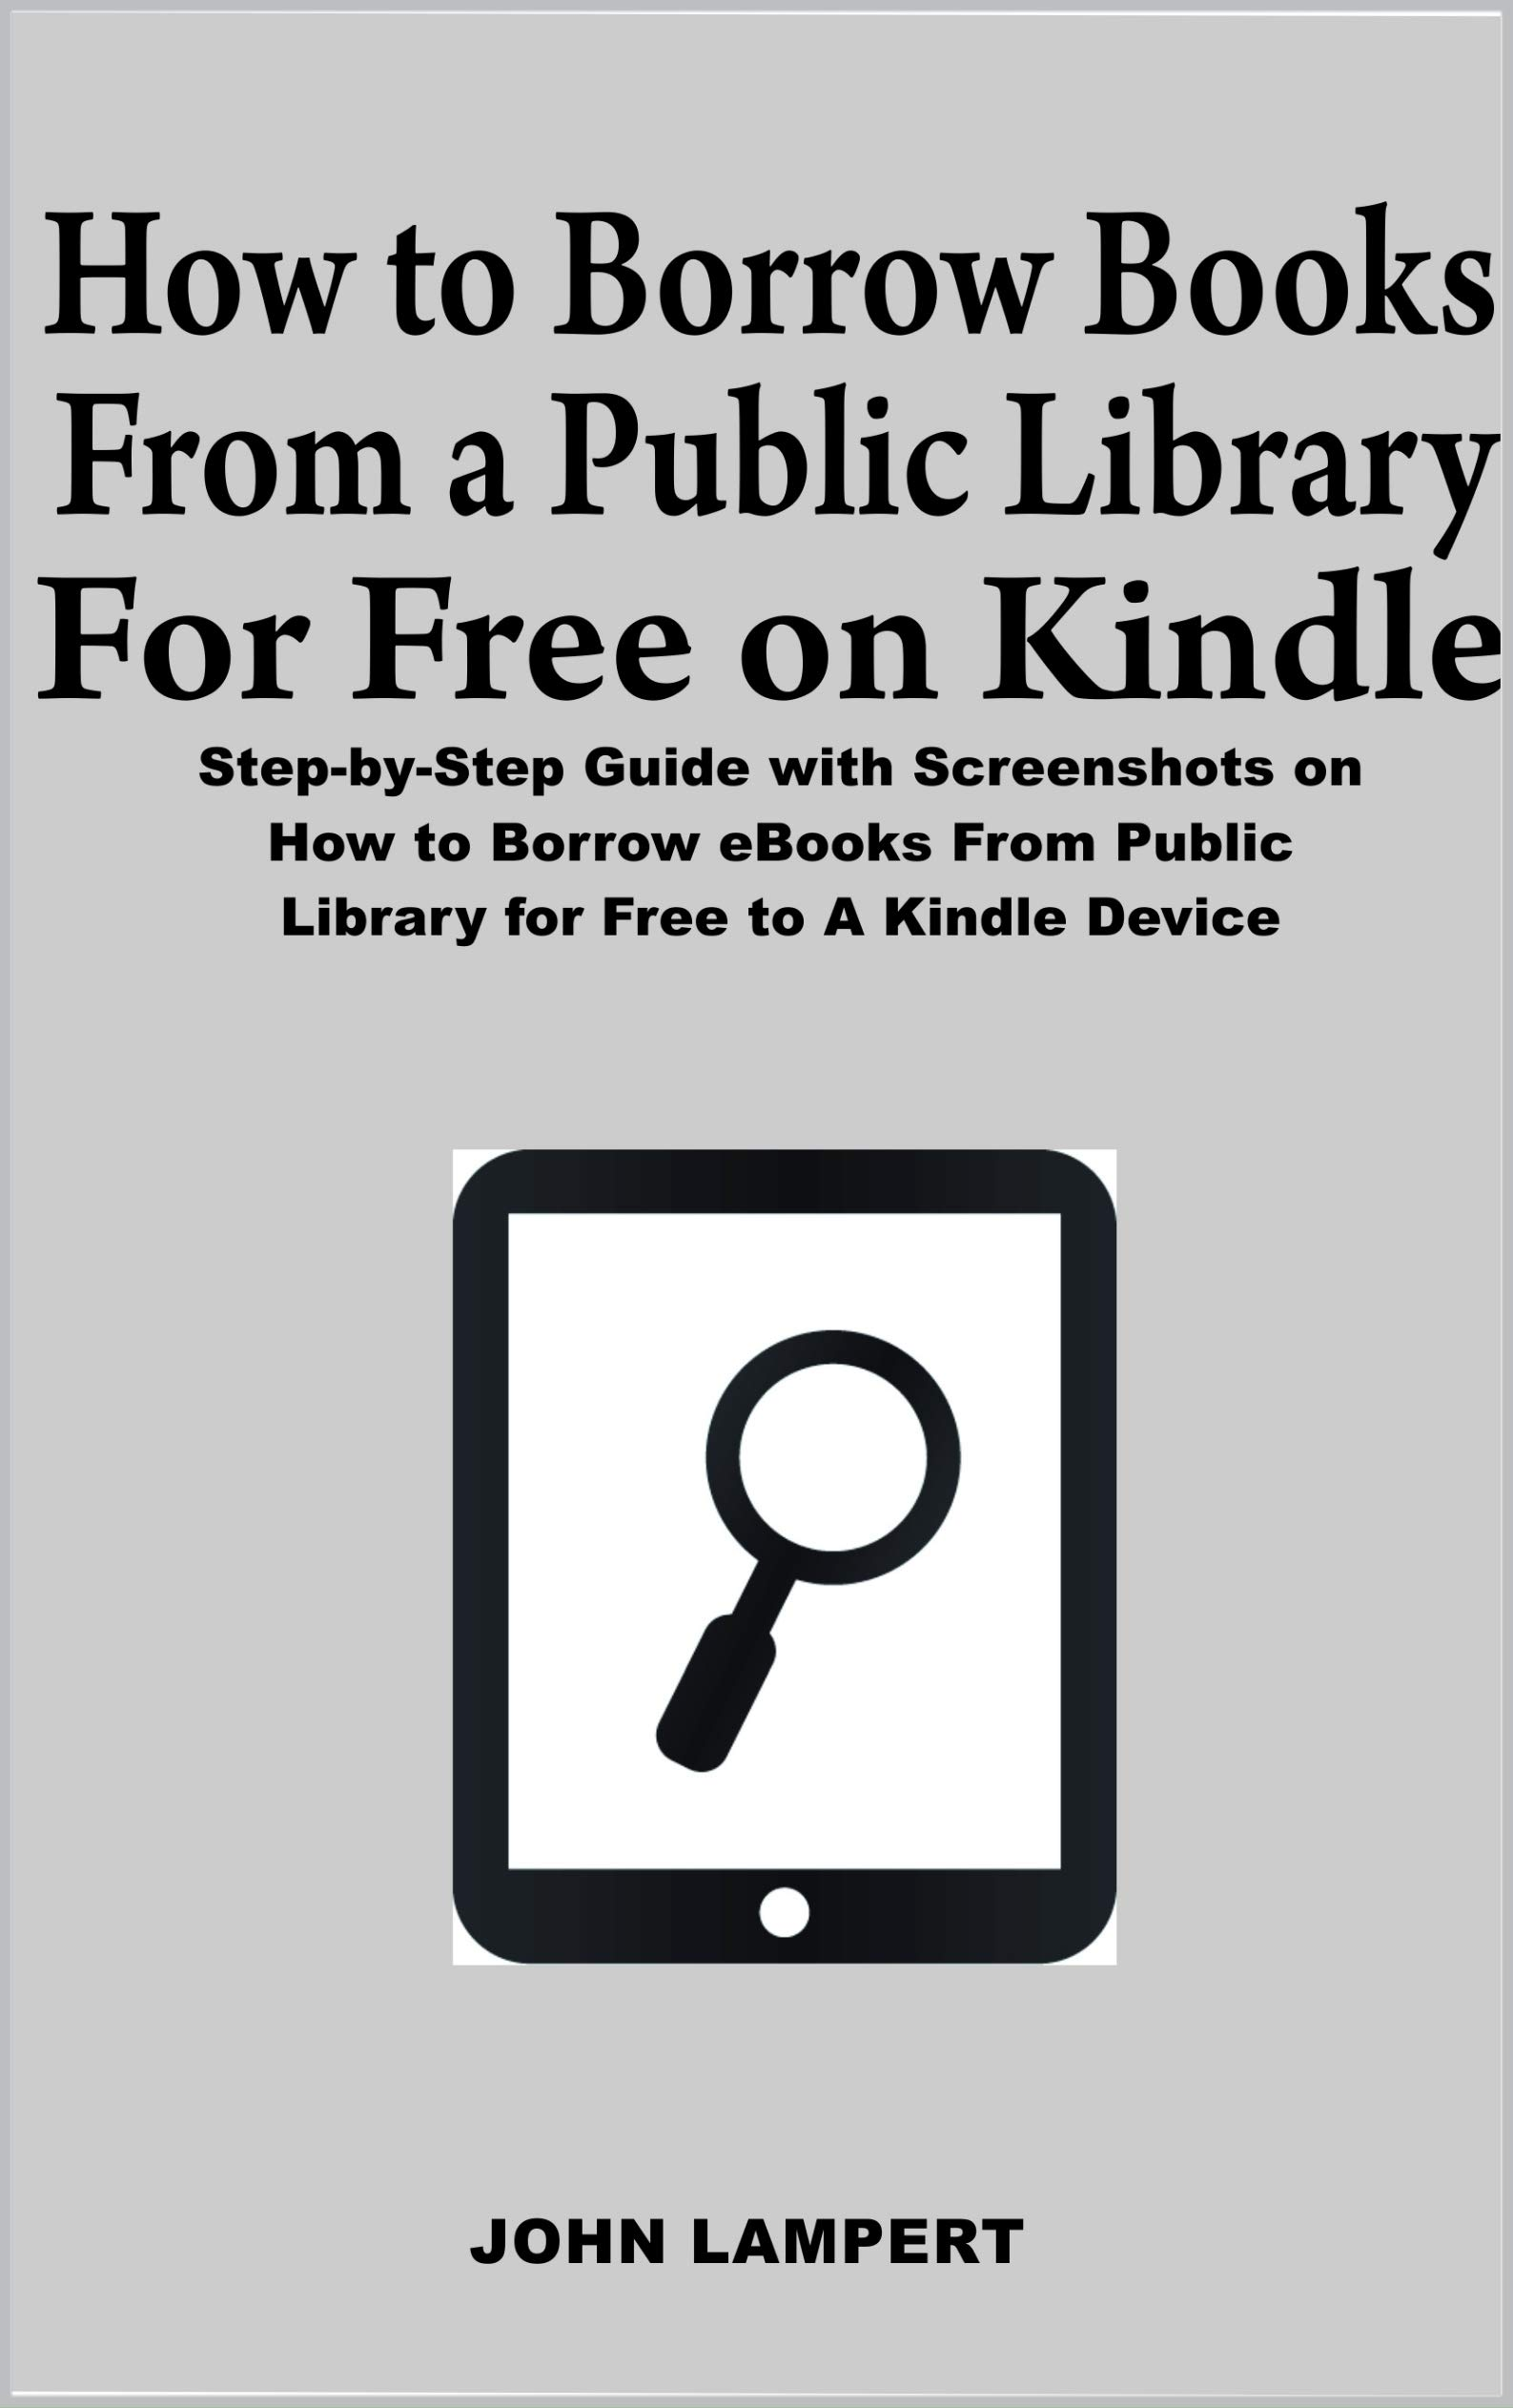 How to Borrow Books from A Public Library for Free on Kindle: Step-by-Step Guide with Screenshots on How to Borrow eBooks From Public Library for Free to A Kindle Device